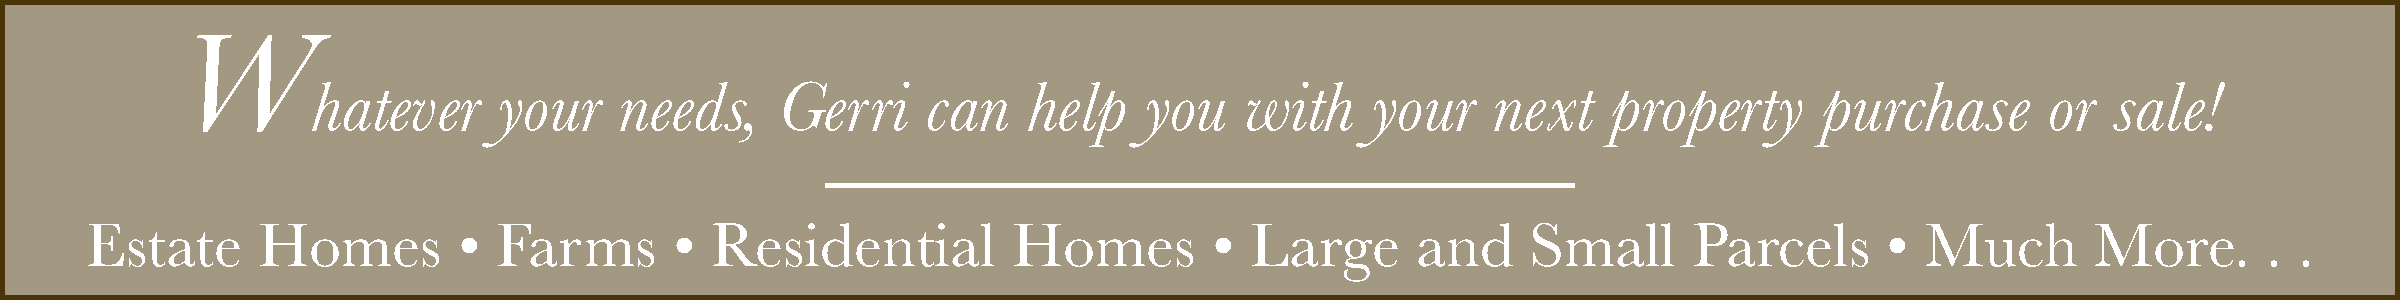 Whatever your needs, Gerri can help you with your next property purchase or sale! Estate Homes, Farms, Residential, Homes, Large and Small Parcels, Much more. . .